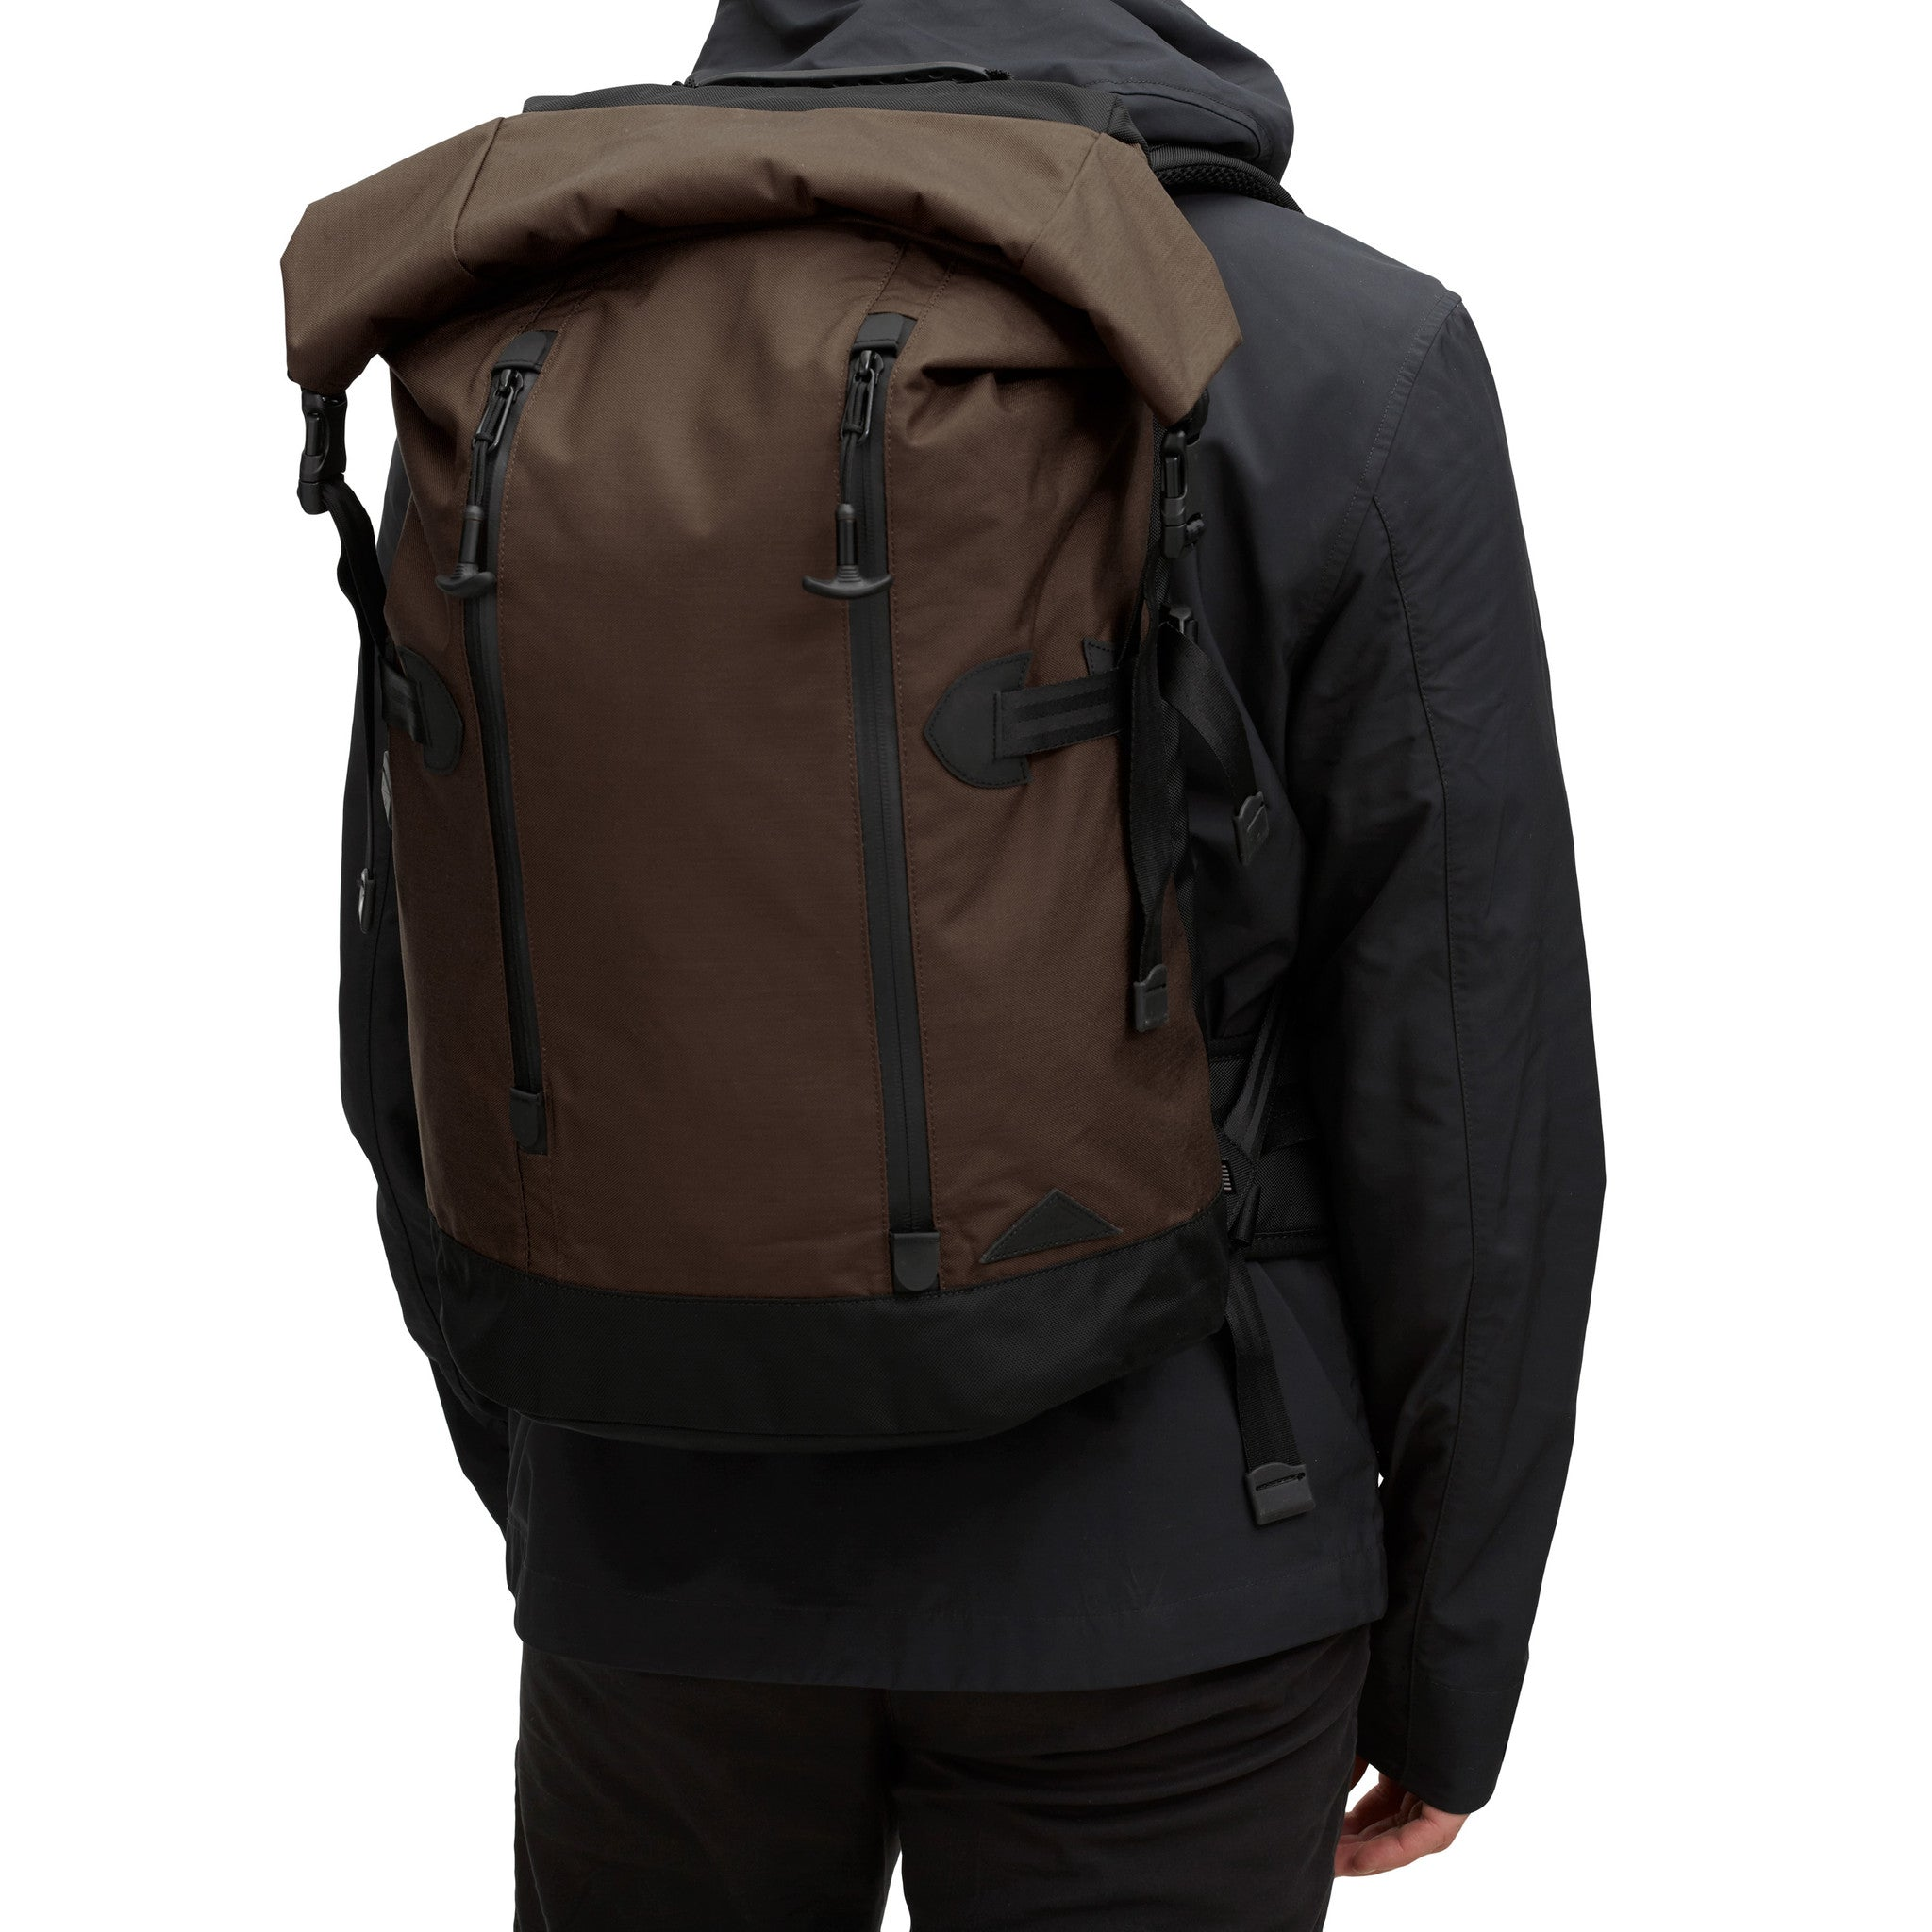 Trecknos Roll Top Pack - Brown